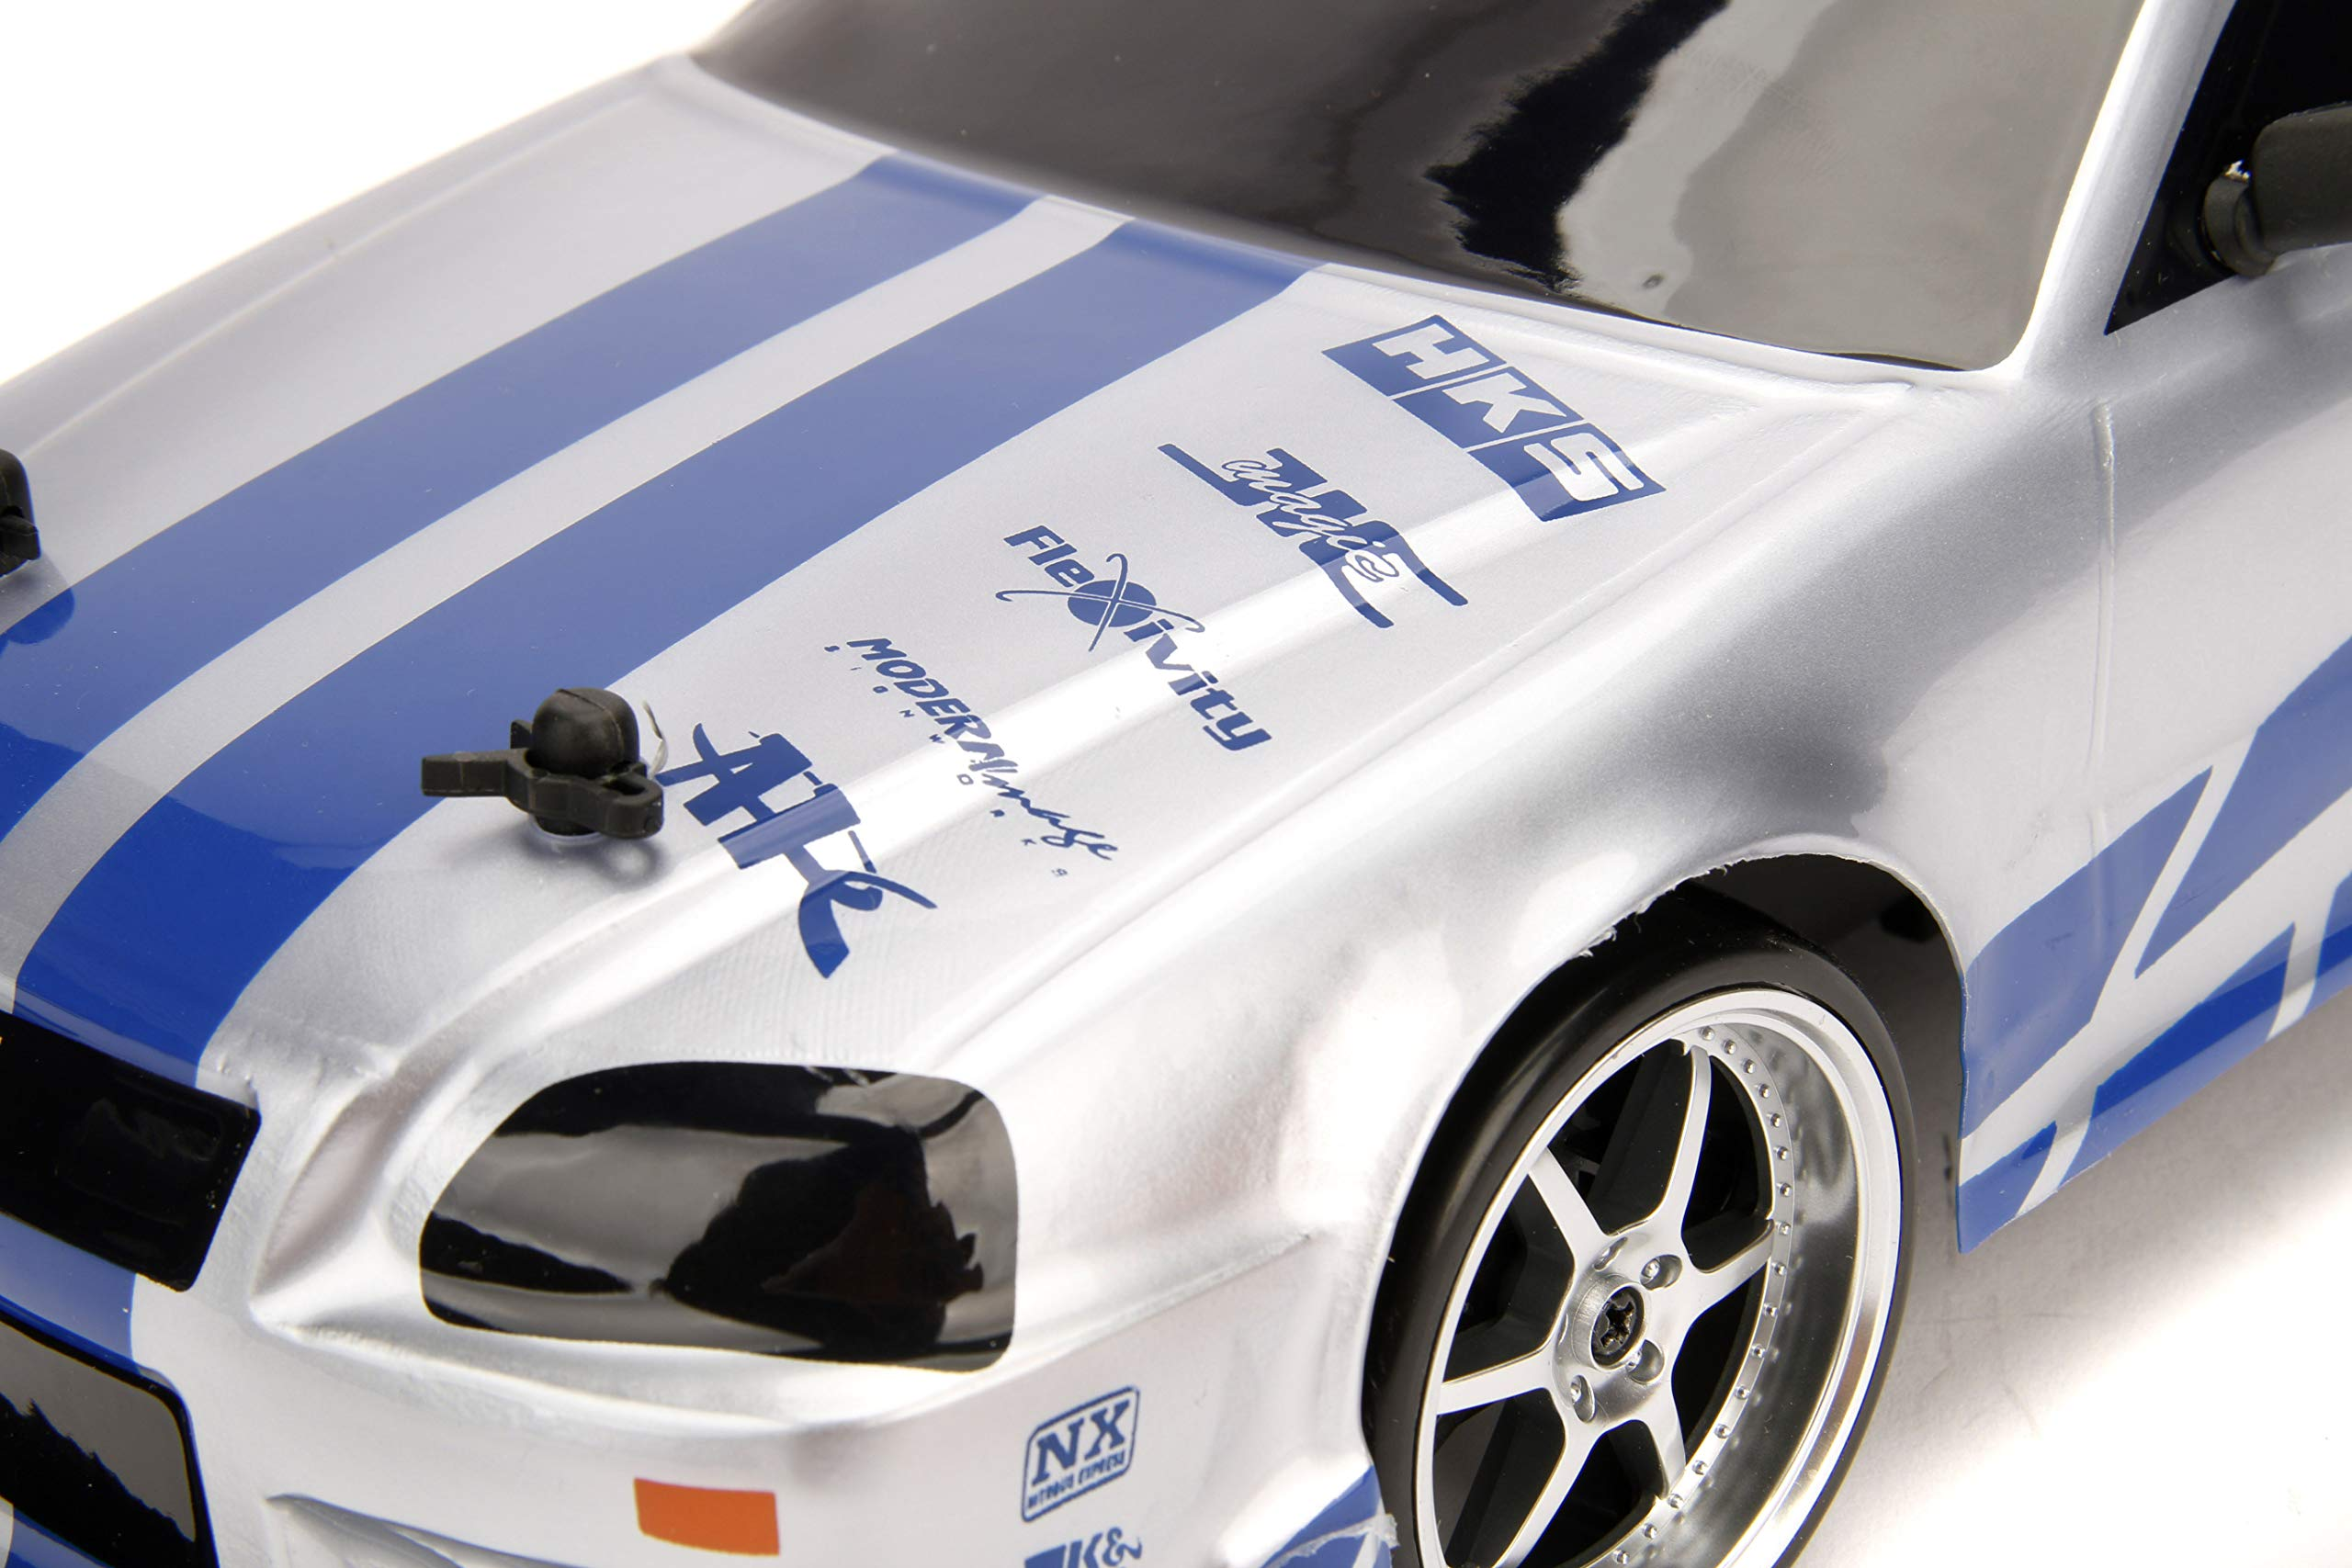 Jada 99701 Toys Fast & Furious Brian's Nissan Skyline GT-R (BN34) Drift Power Slide RC Radio Remote Control Toy Race Car with Extra Tires, 1:10 Scale, Silver/Blue by Jada (Image #4)